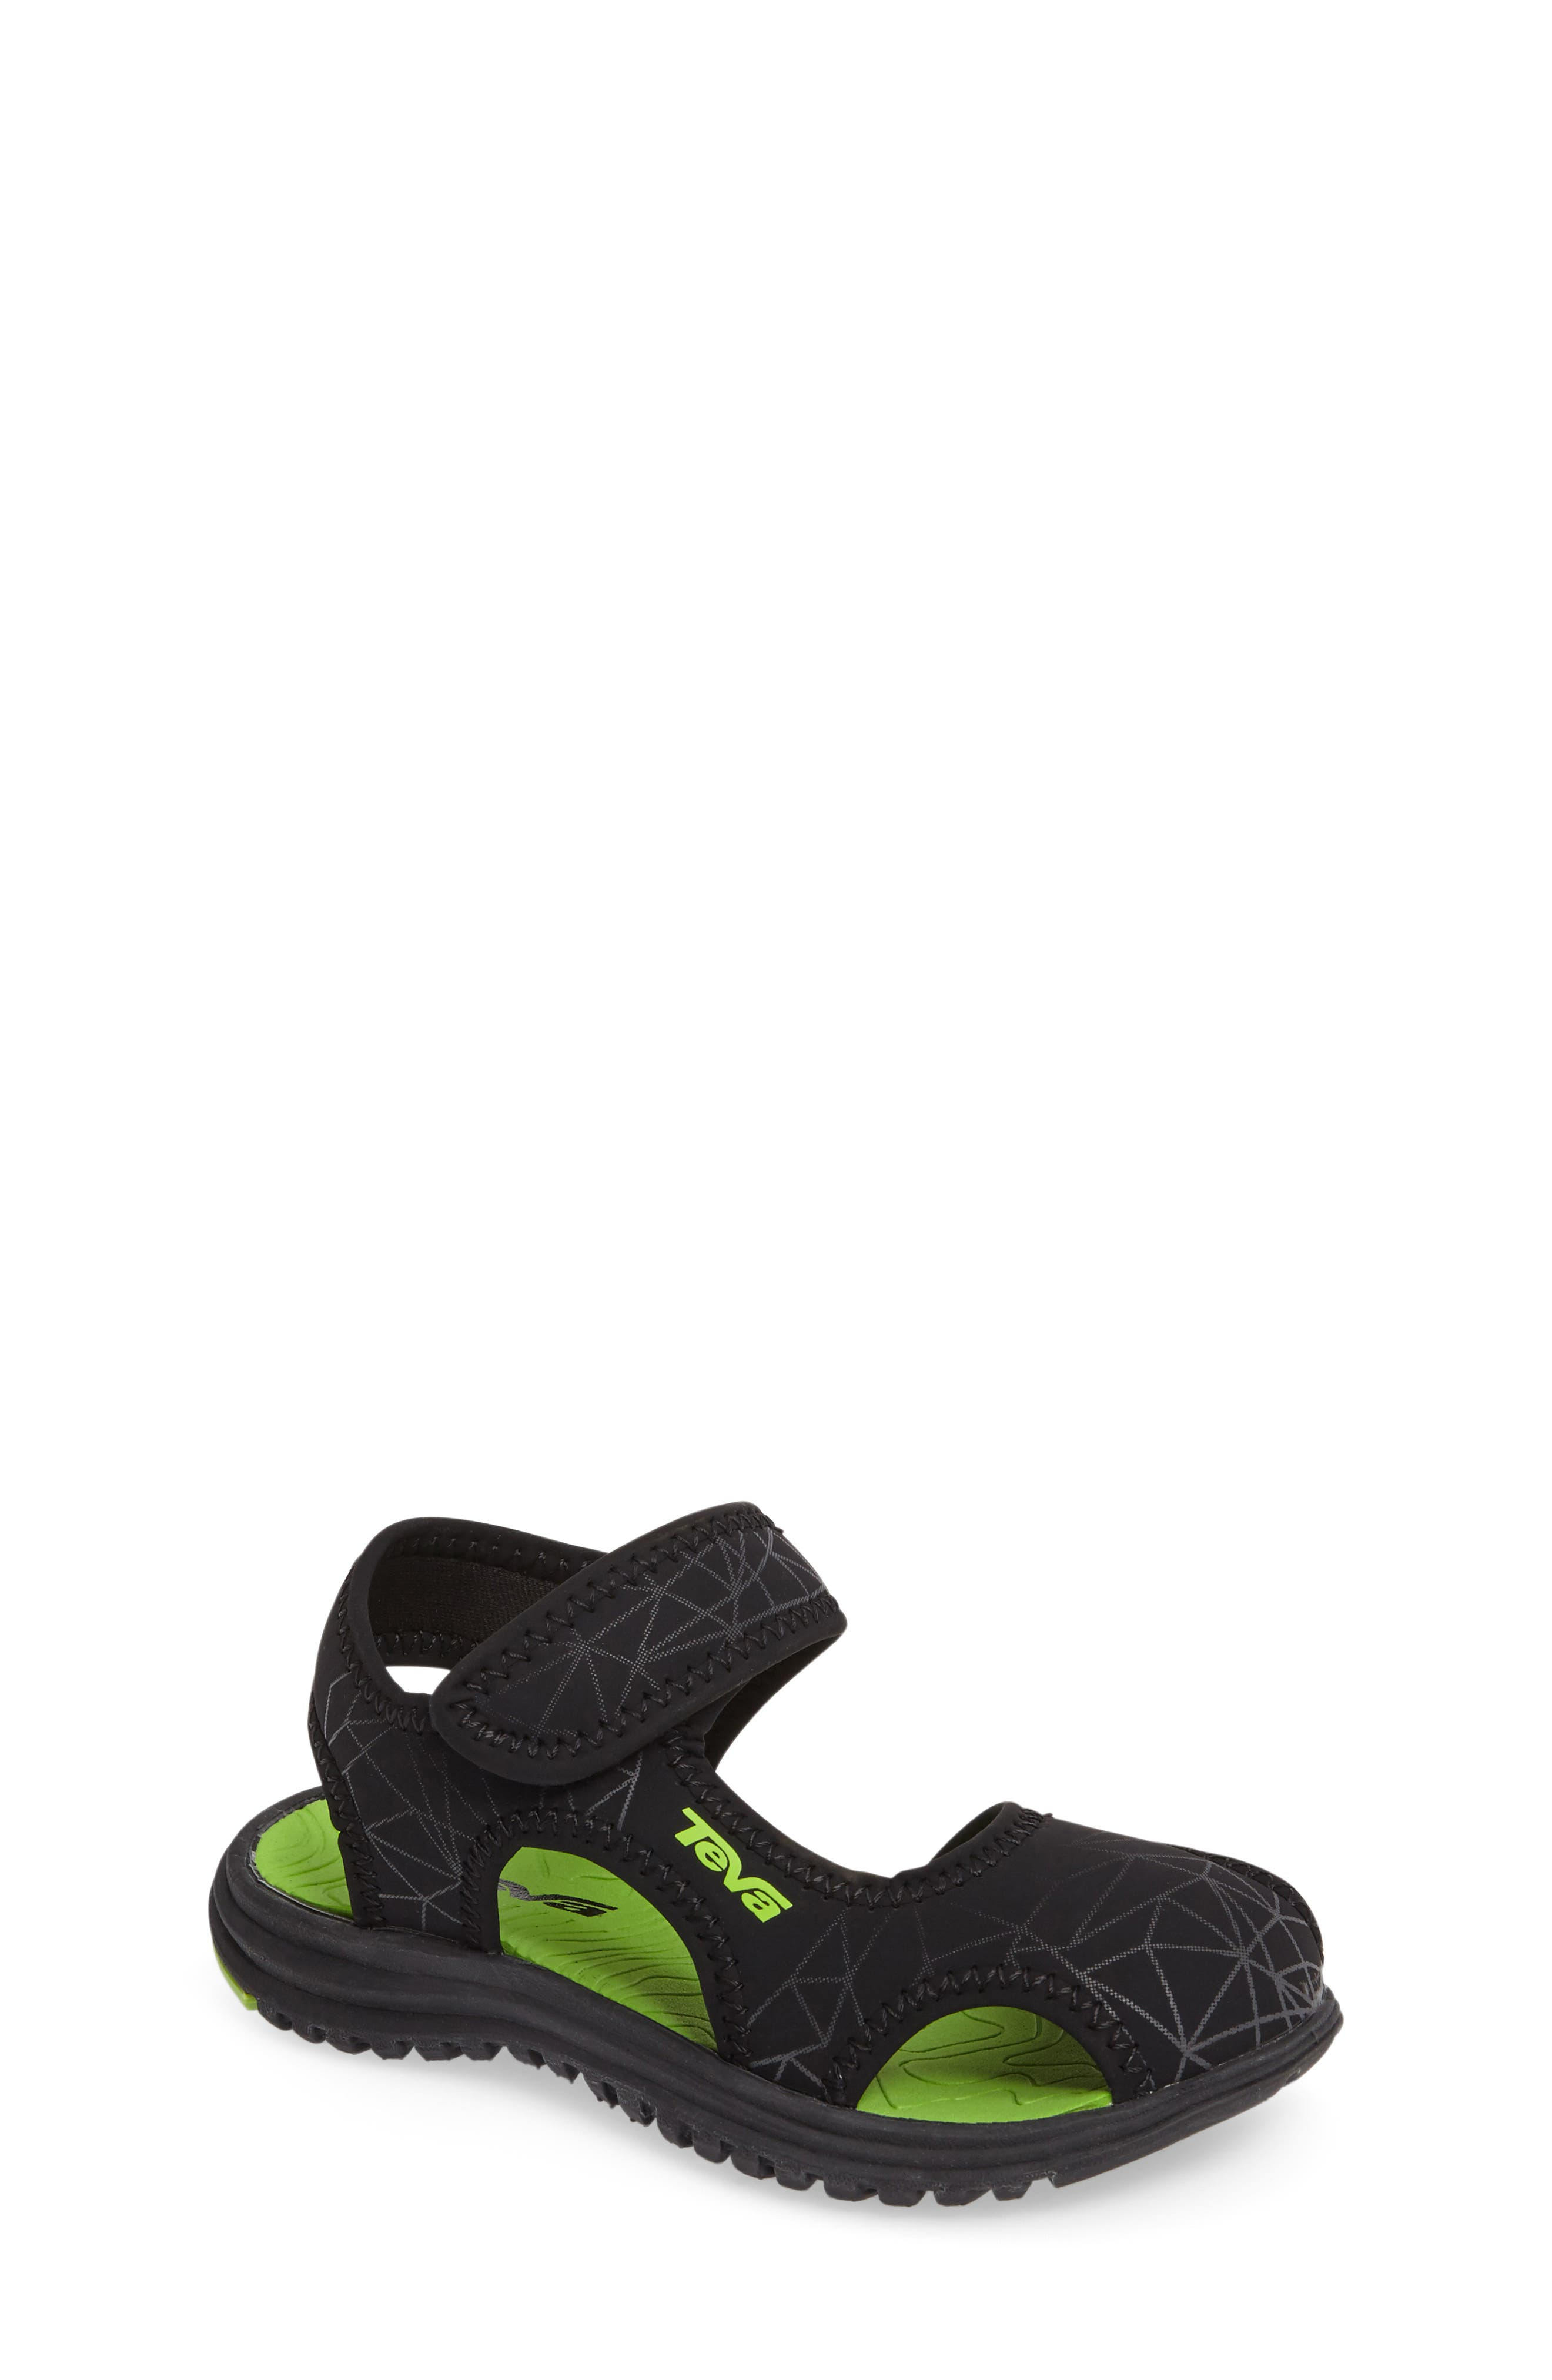 Main Image - Teva 'Tidepool' Water Sandal (Baby, Walker, Toddler & Little Kid)